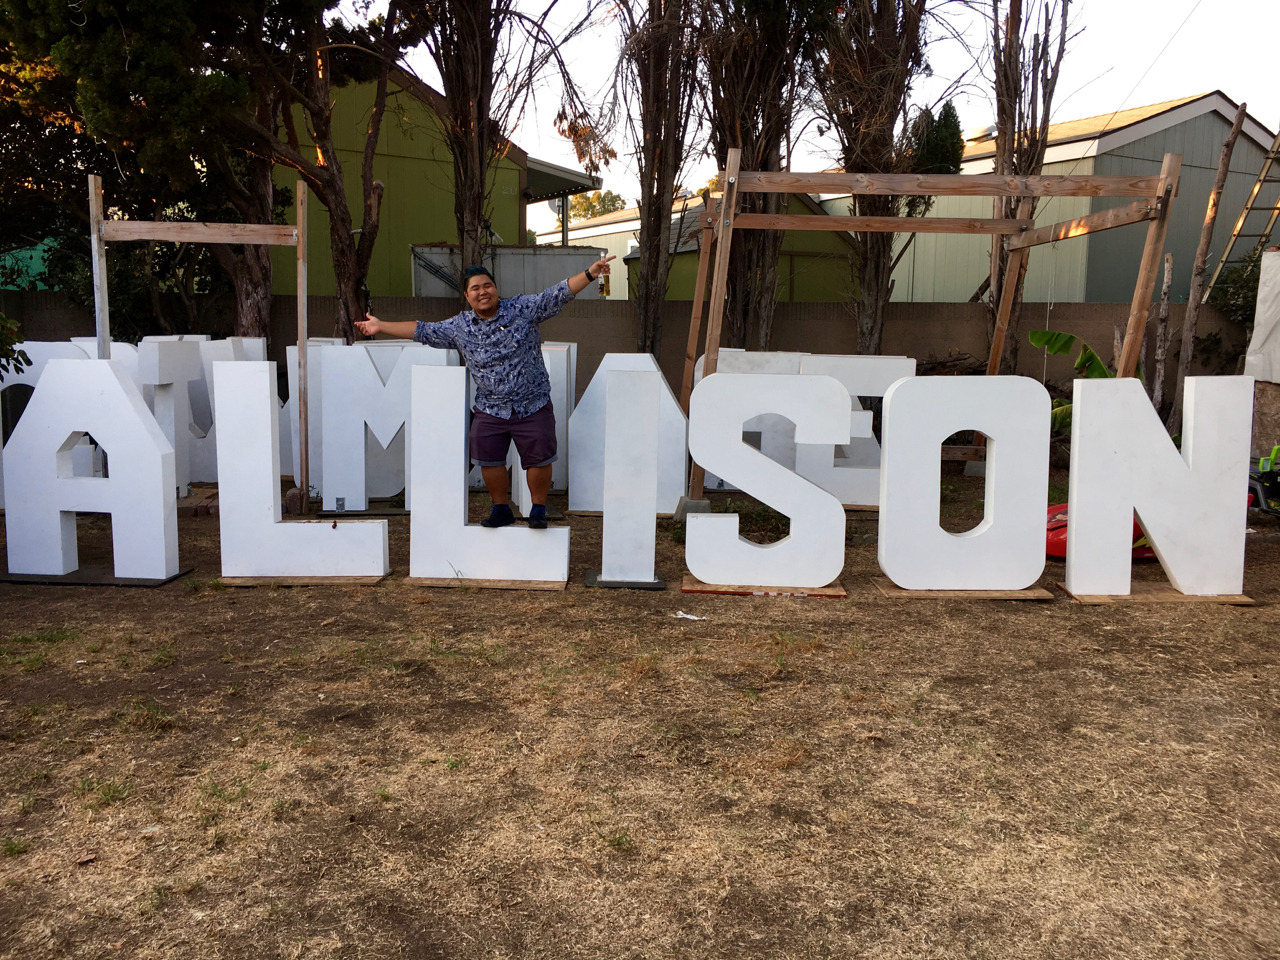 (Thanks Kuya Ivan for making the massive letters for me!)